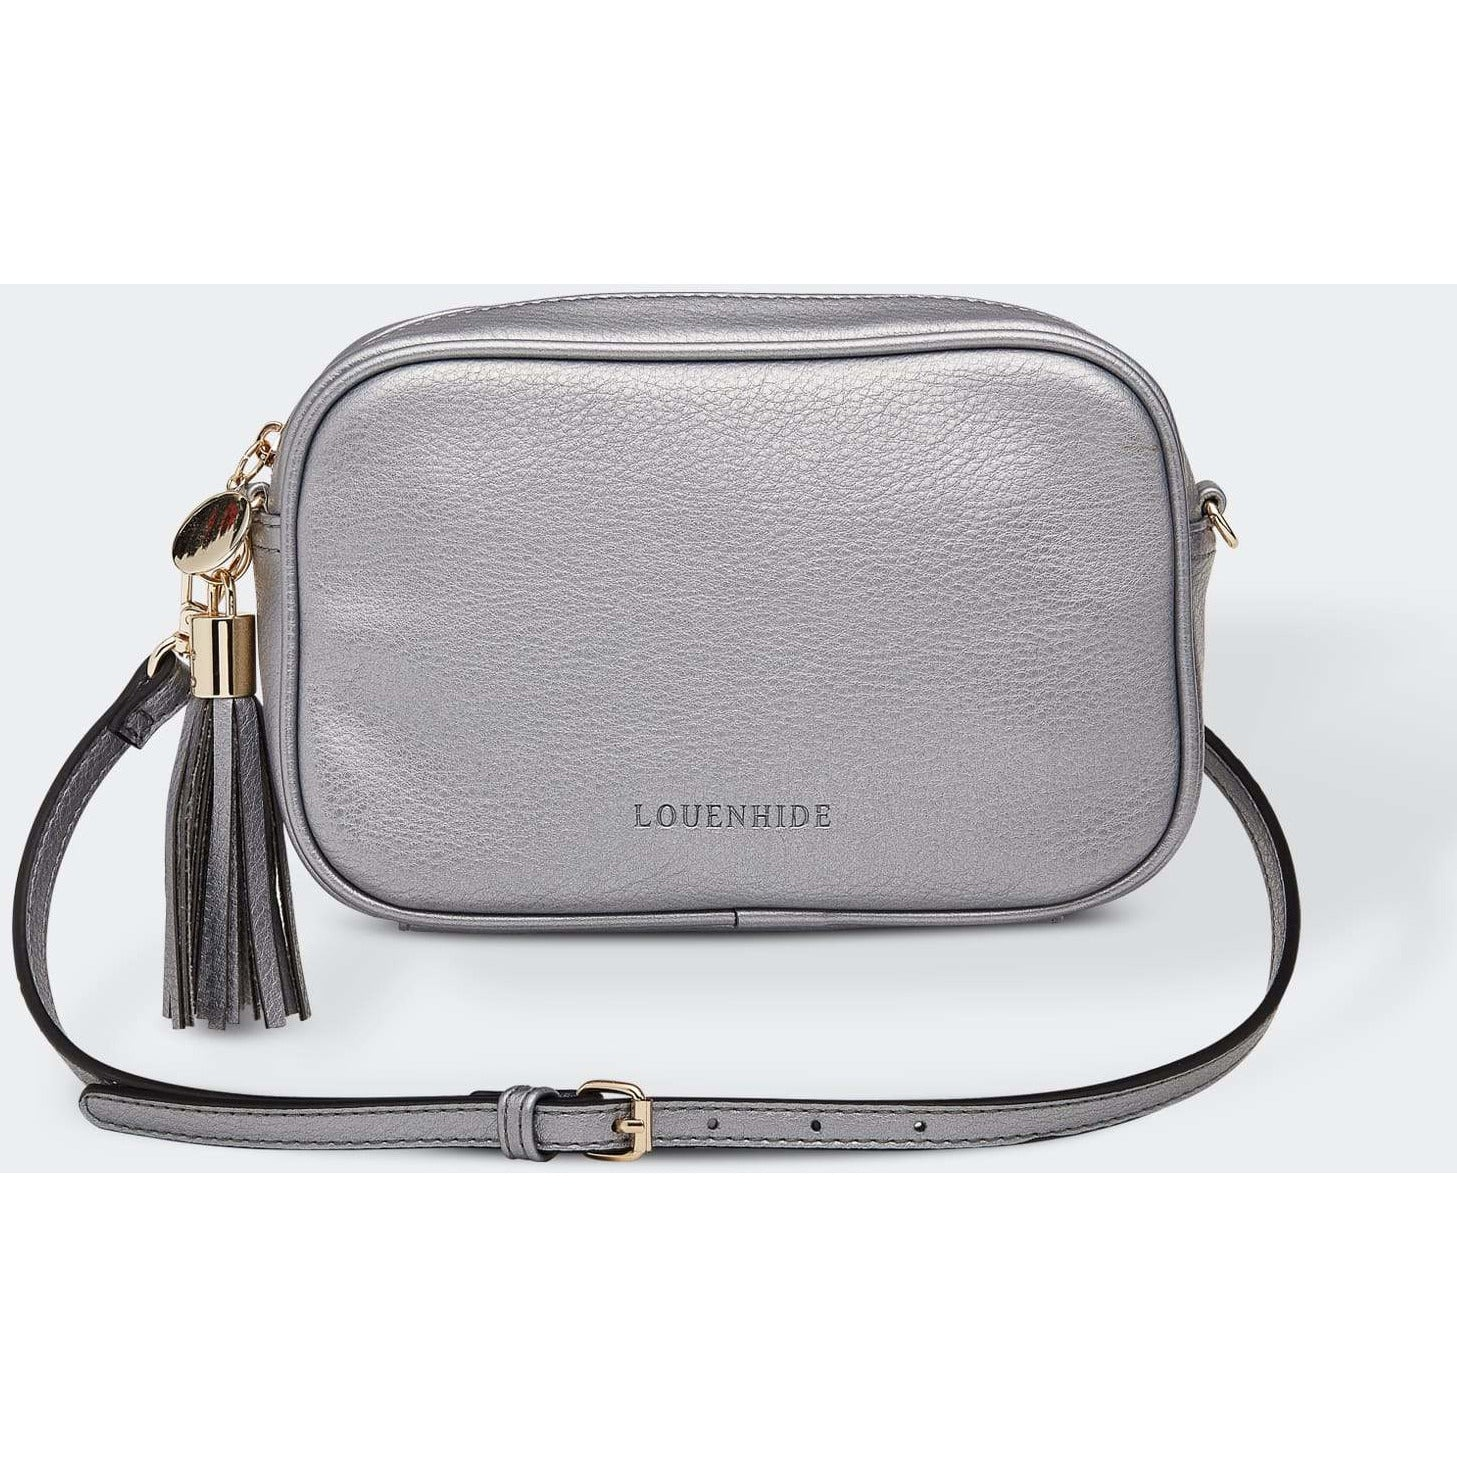 Louenhide Gigi Cross Body Bag